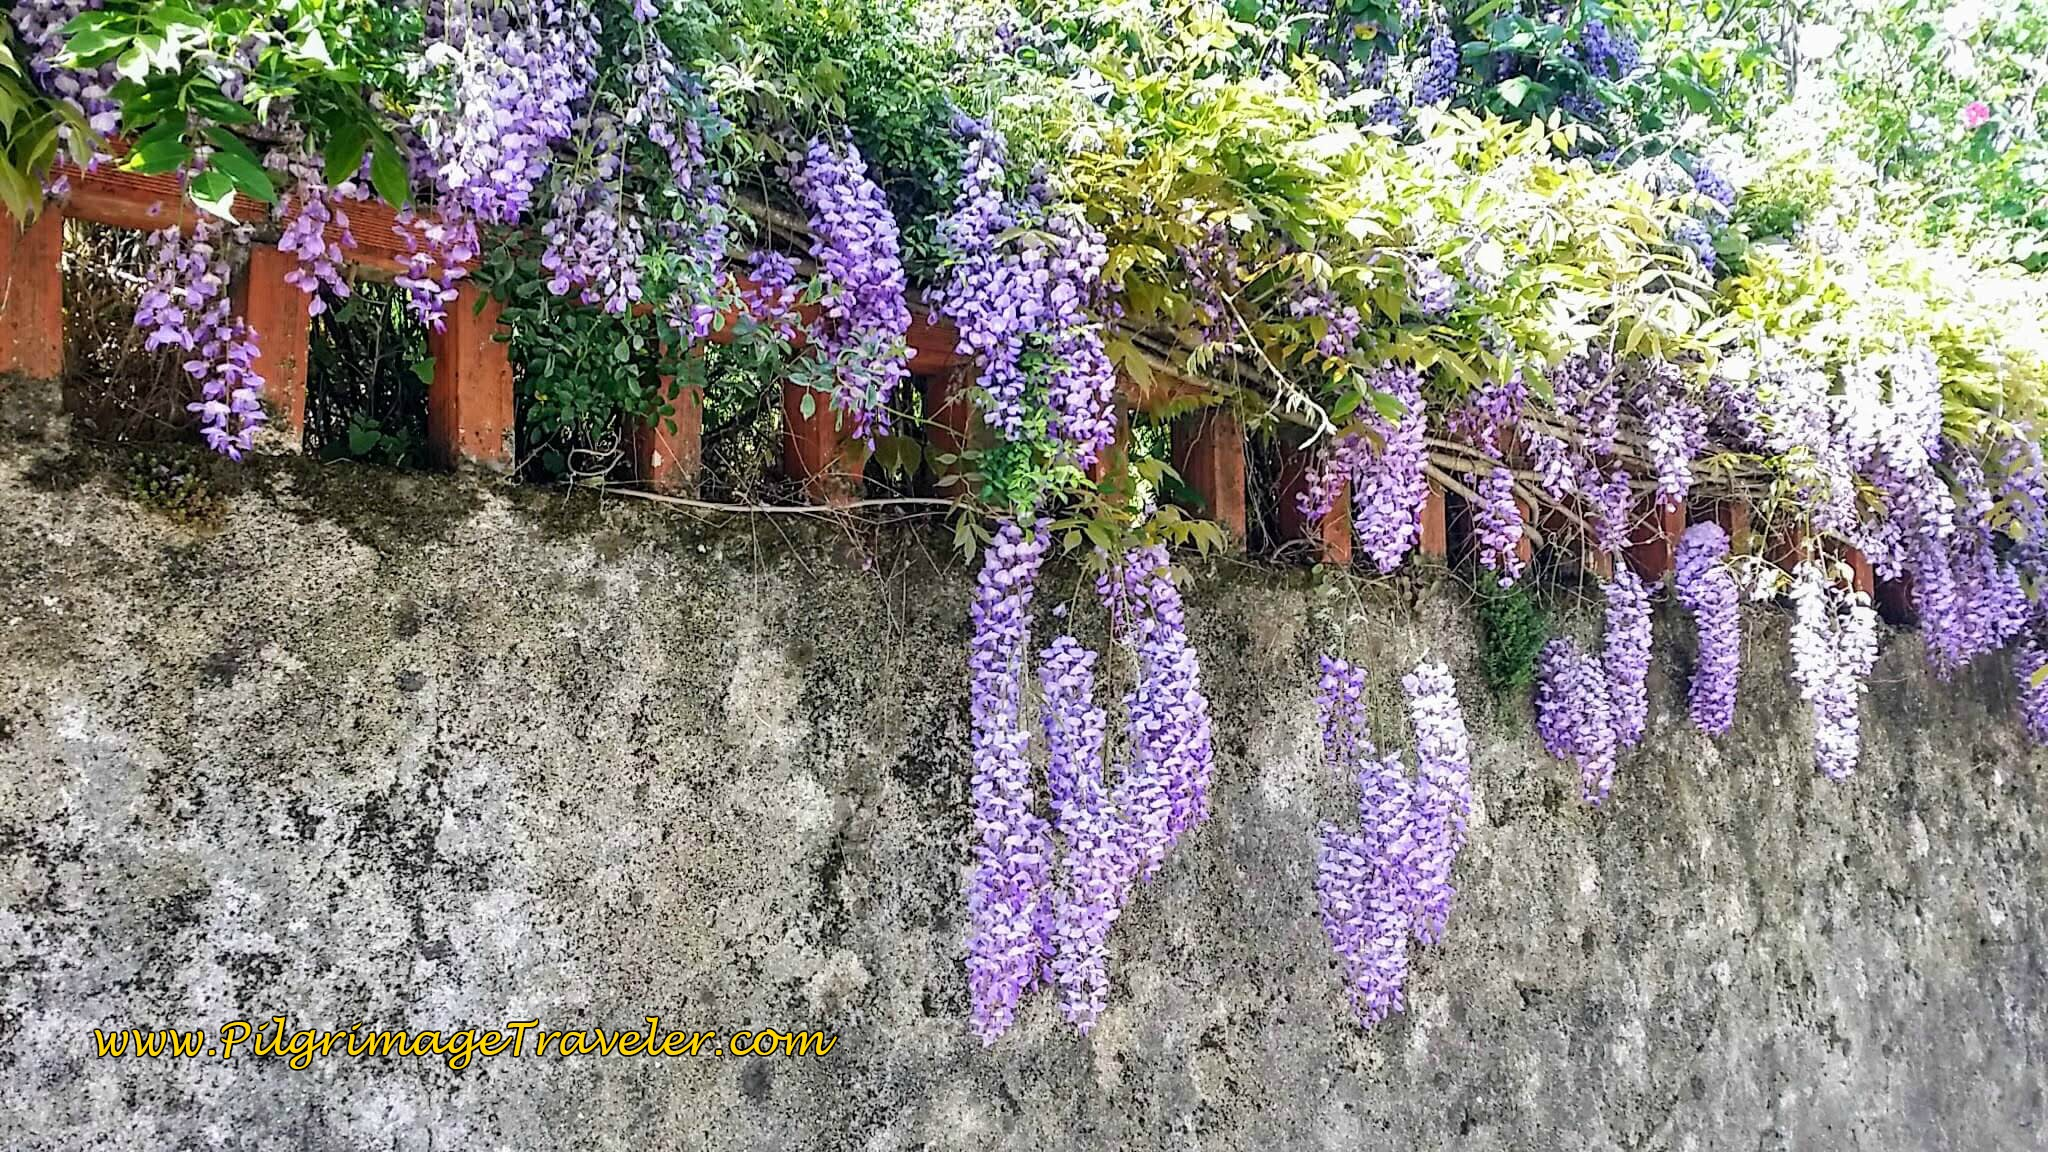 Wisteria Hangs From the Walls